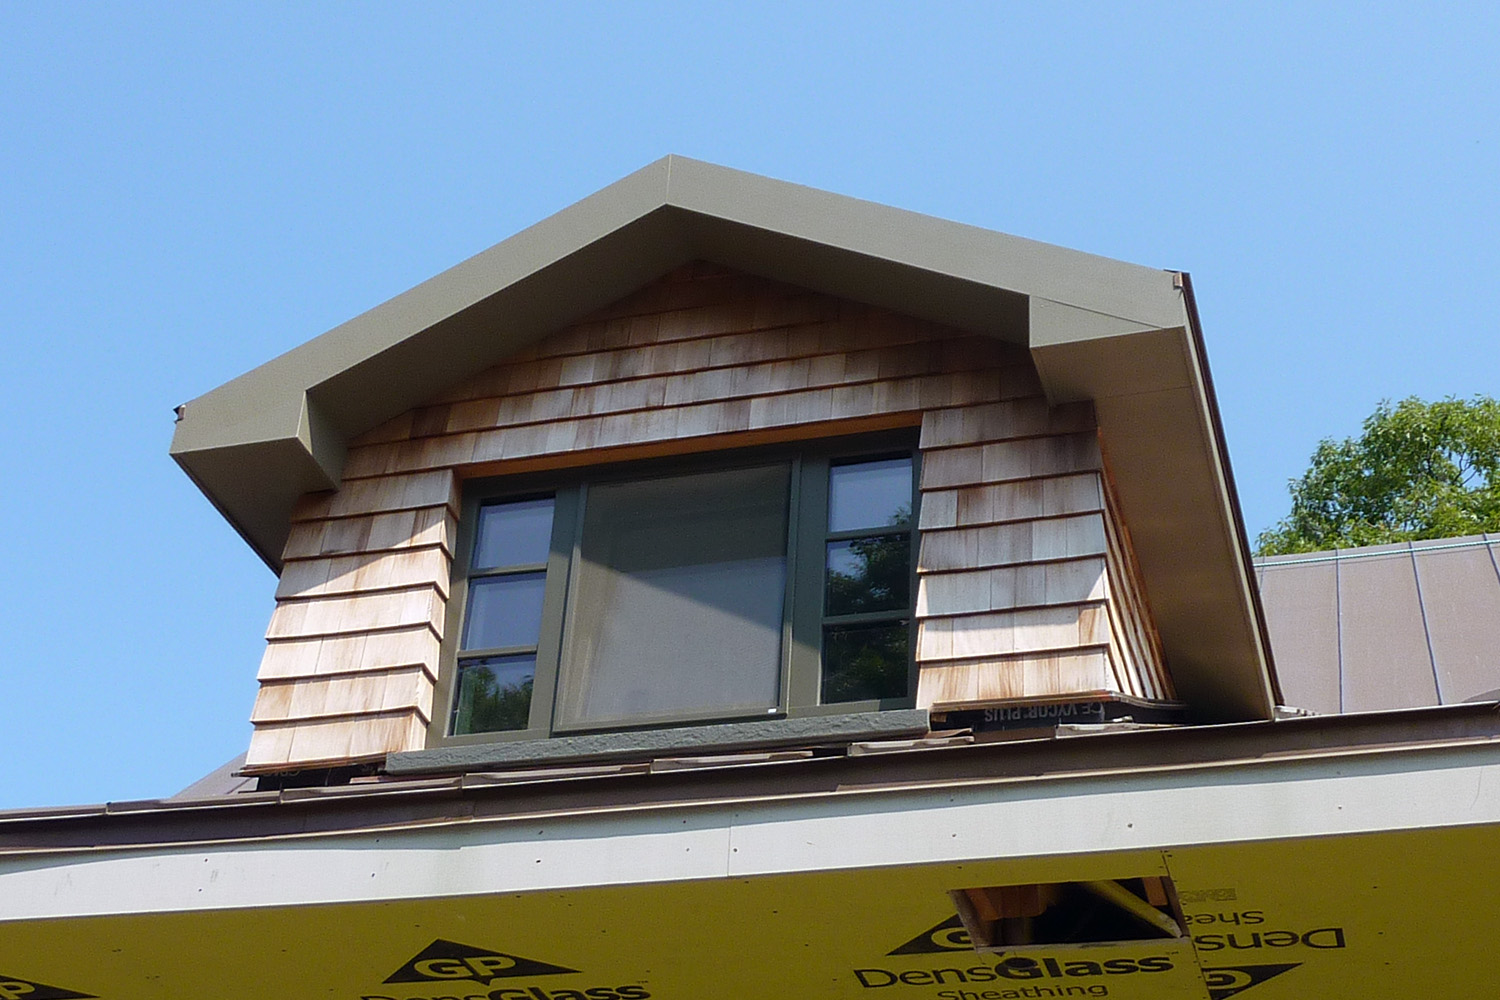 Boral trim made from recycled materials